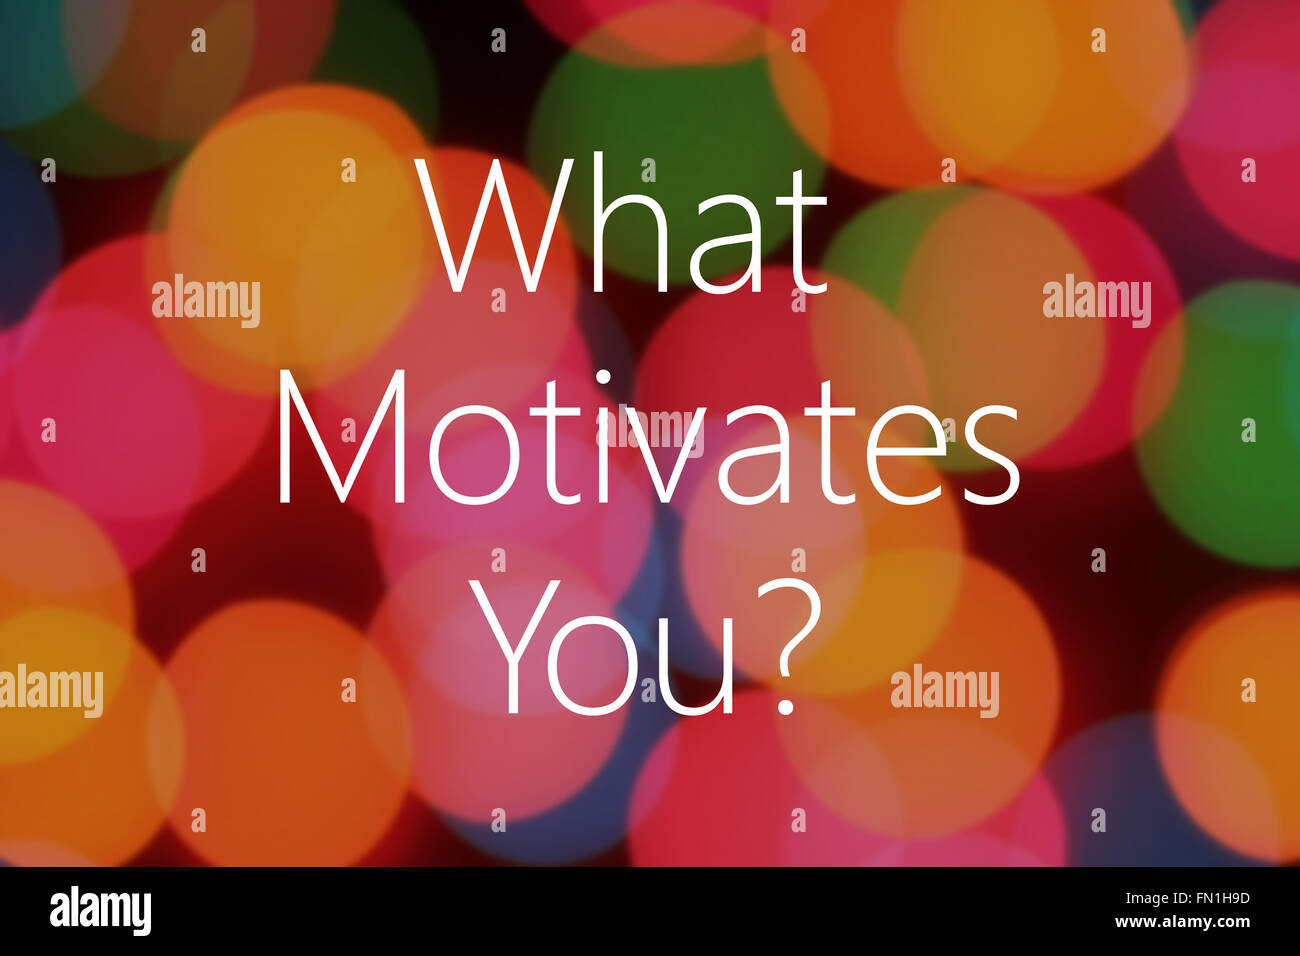 what motivates you text on colorful bokeh background stock photo stock photo what motivates you text on colorful bokeh background